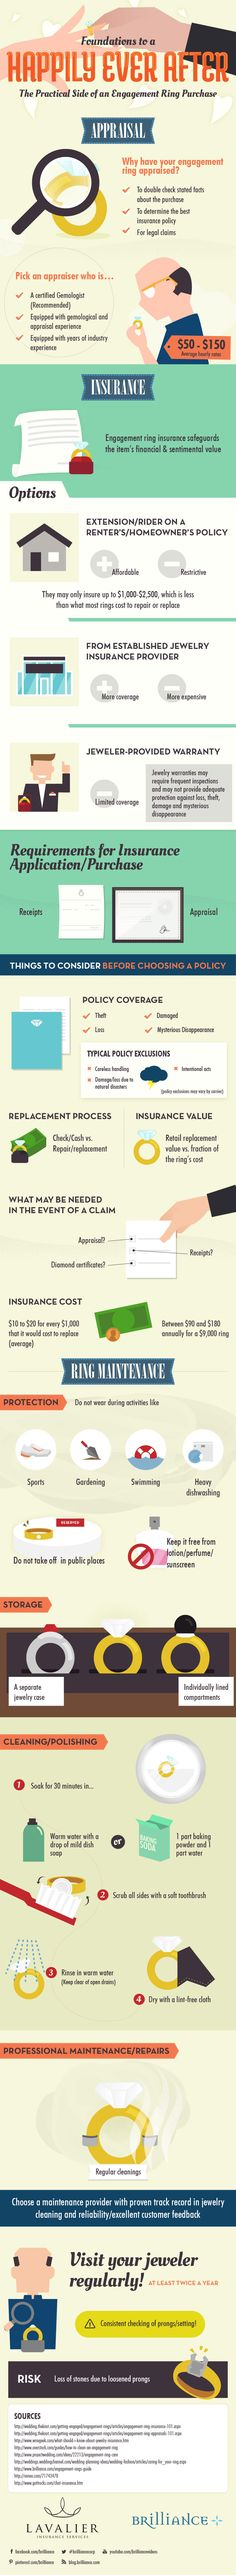 Your engagement ring needs more than just perfunctory polishing every now and then. Learn all about how to protect, store, clean, polish, and get professional maintenance for your sparkler with this new infographic from Brilliance and Lavalier, on the blog! http://blog.brilliance.com/education/the-practical-side-to-buying-an-engagement-ring